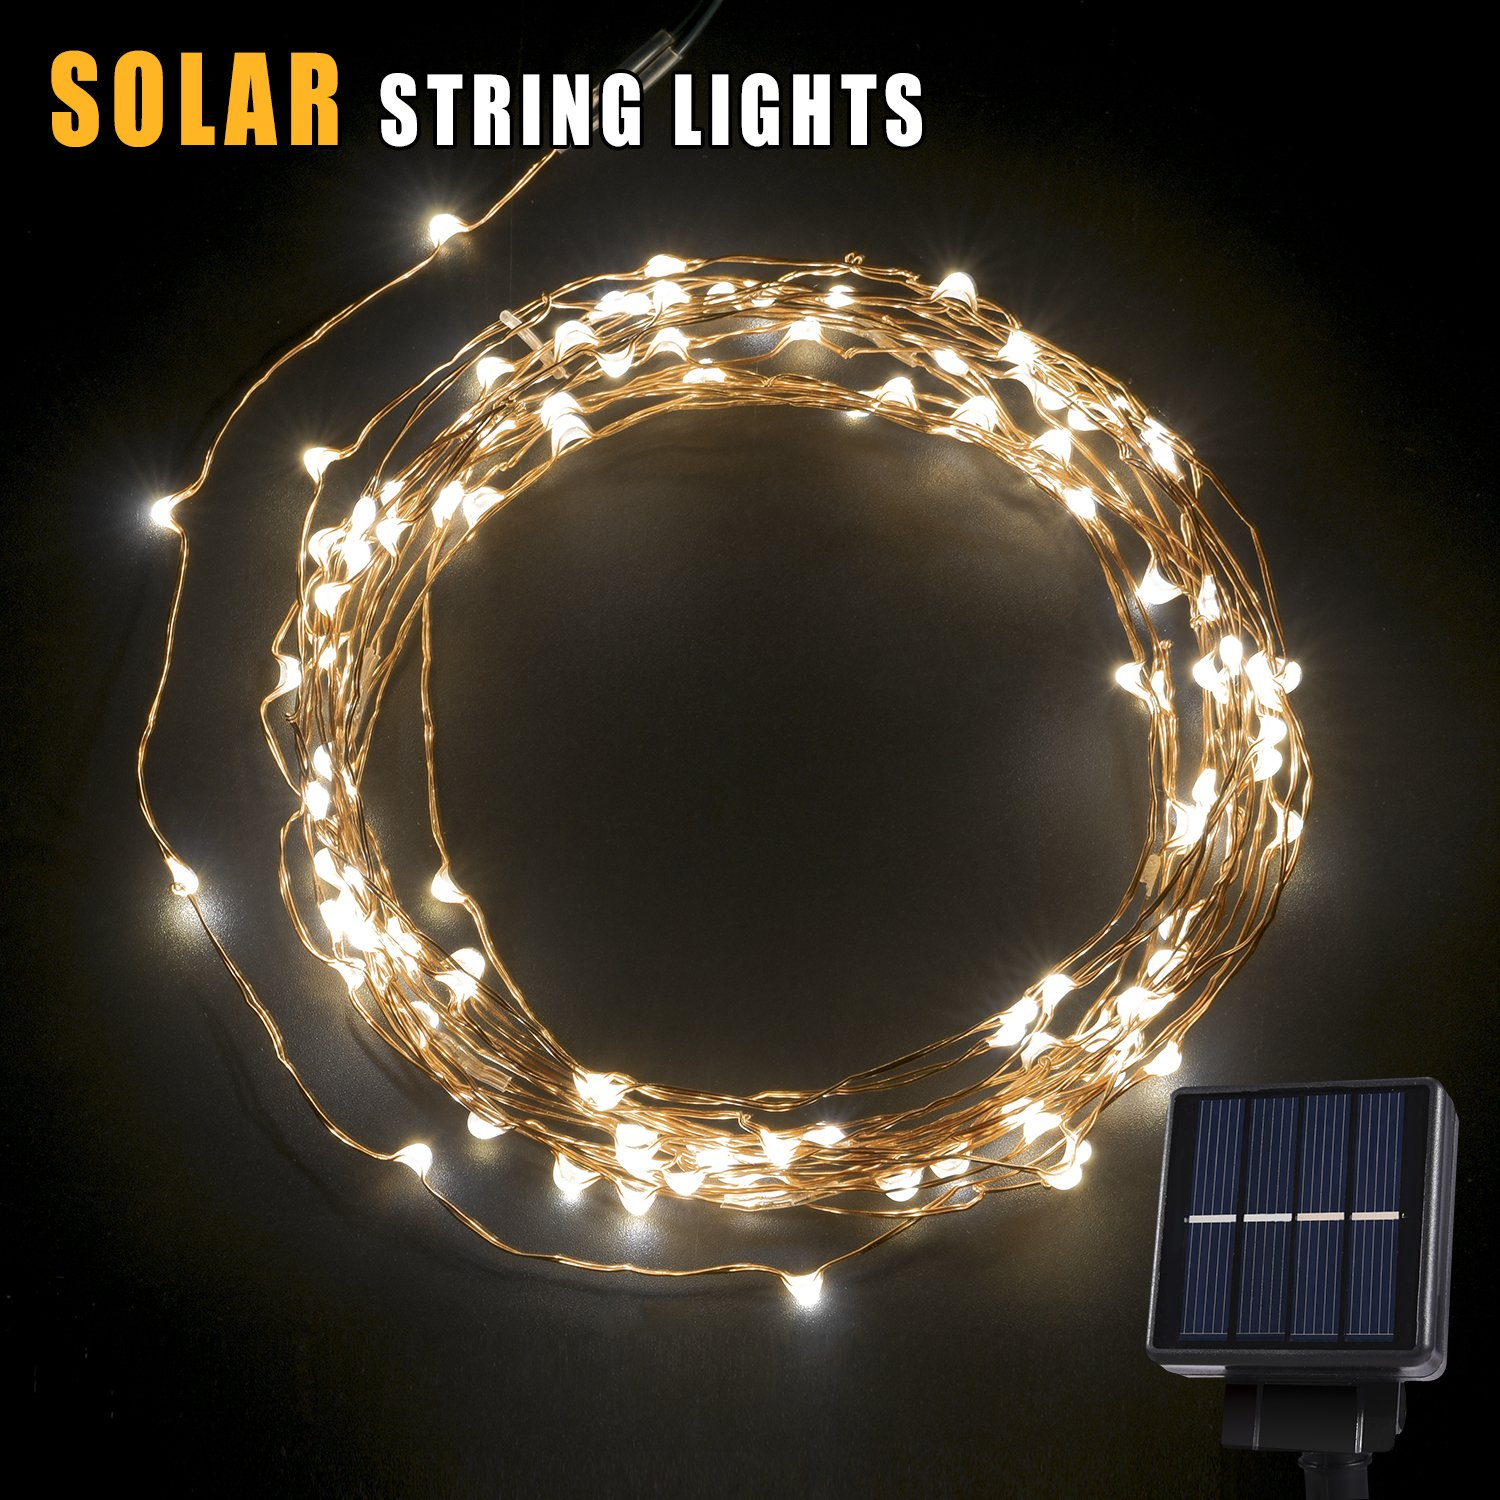 Solar Led String Garden Lights : Solar LED String Light 120 LEDs Outdoor Solar Powered LED String Lights Water... eBay